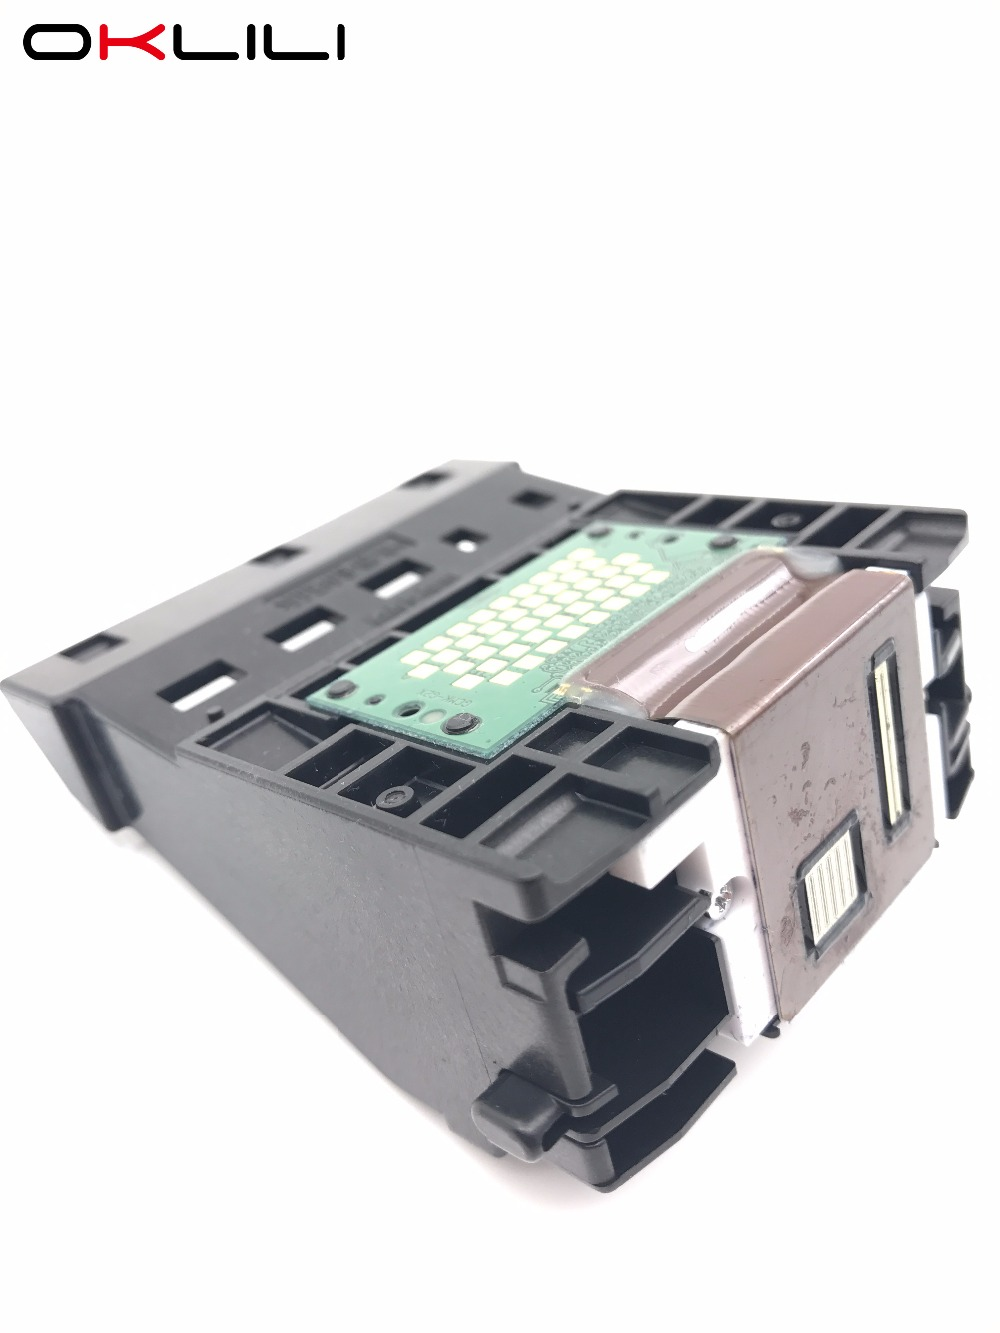 OKLILI ORIGINAL QY6-0064 Printhead Print Head for Canon 560i 850i MP700 MP710 MP730 MP740 i560 i850 iP3100 iP300 iX4000 iX5000 print head qy6 0042 printhead for canon i560 i850 ip3000 mp730 ix5000